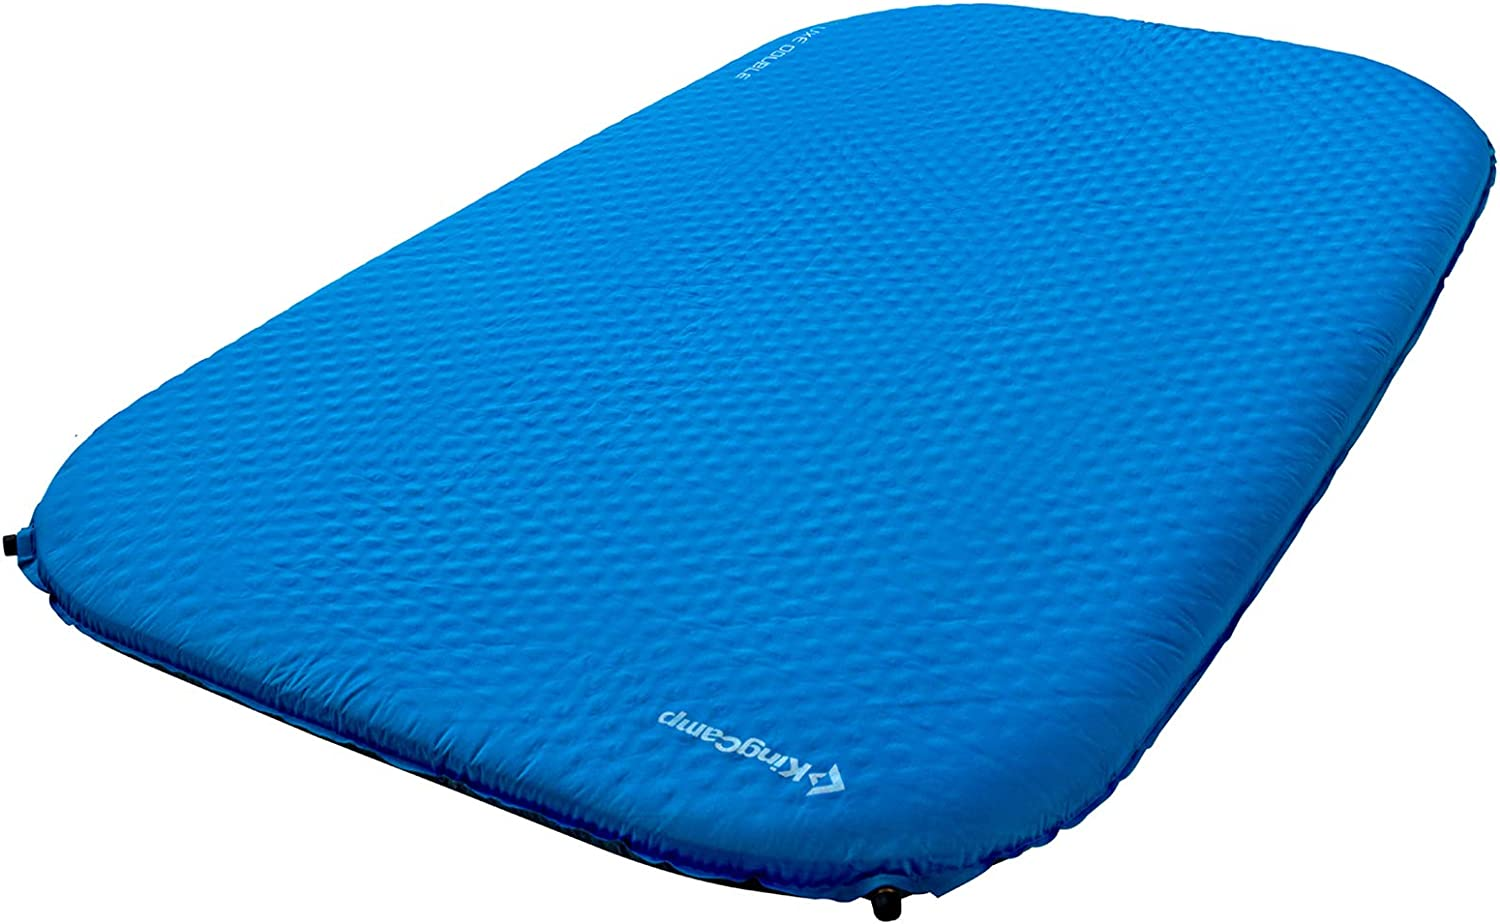 KingCamp Deluxe Self Inflating Air Mattress For Camping